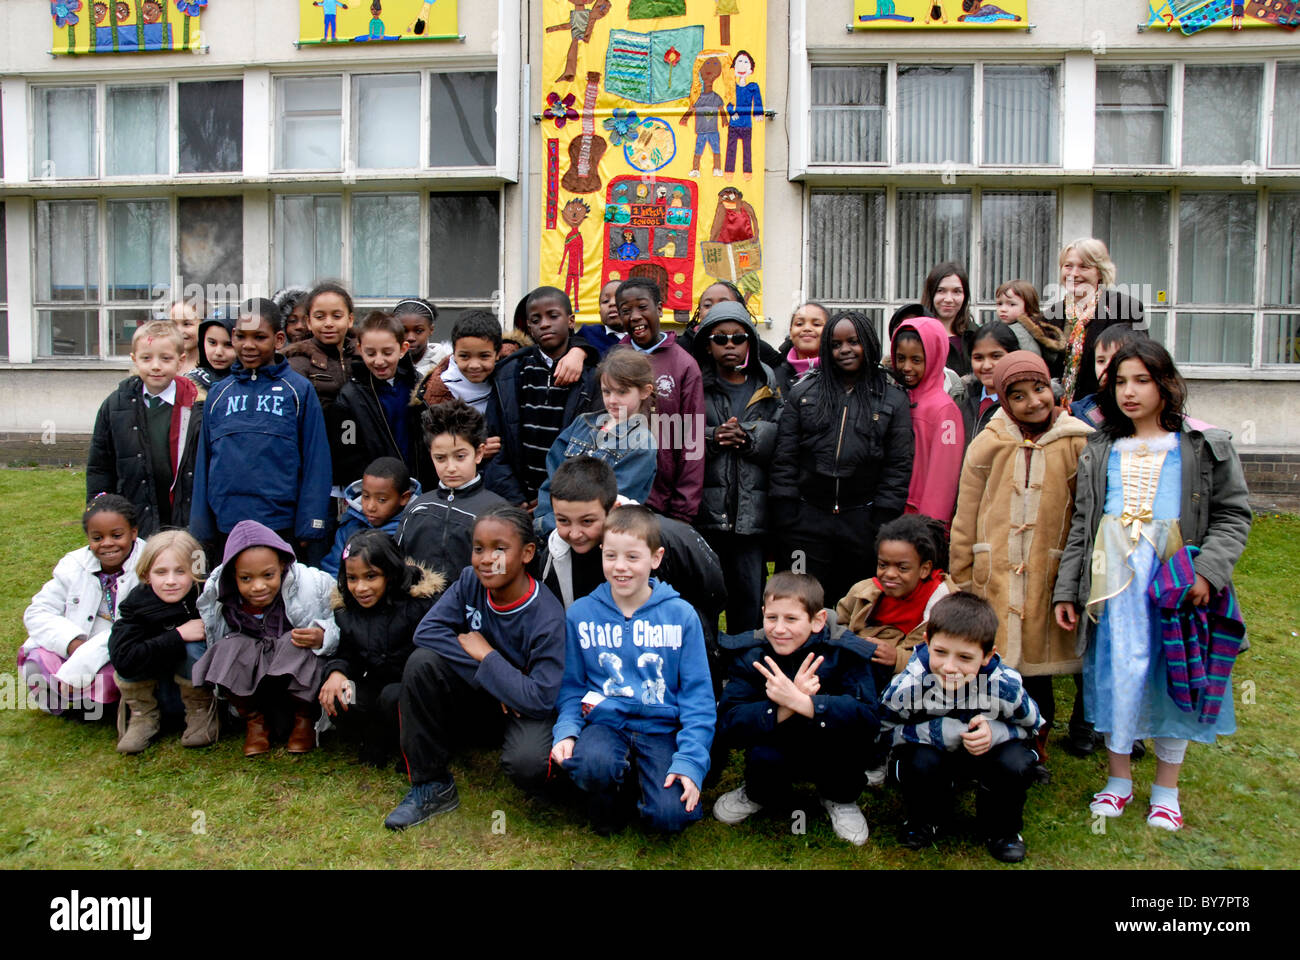 Mixed age group of junior school children assembled in front of school mural they have made. - Stock Image